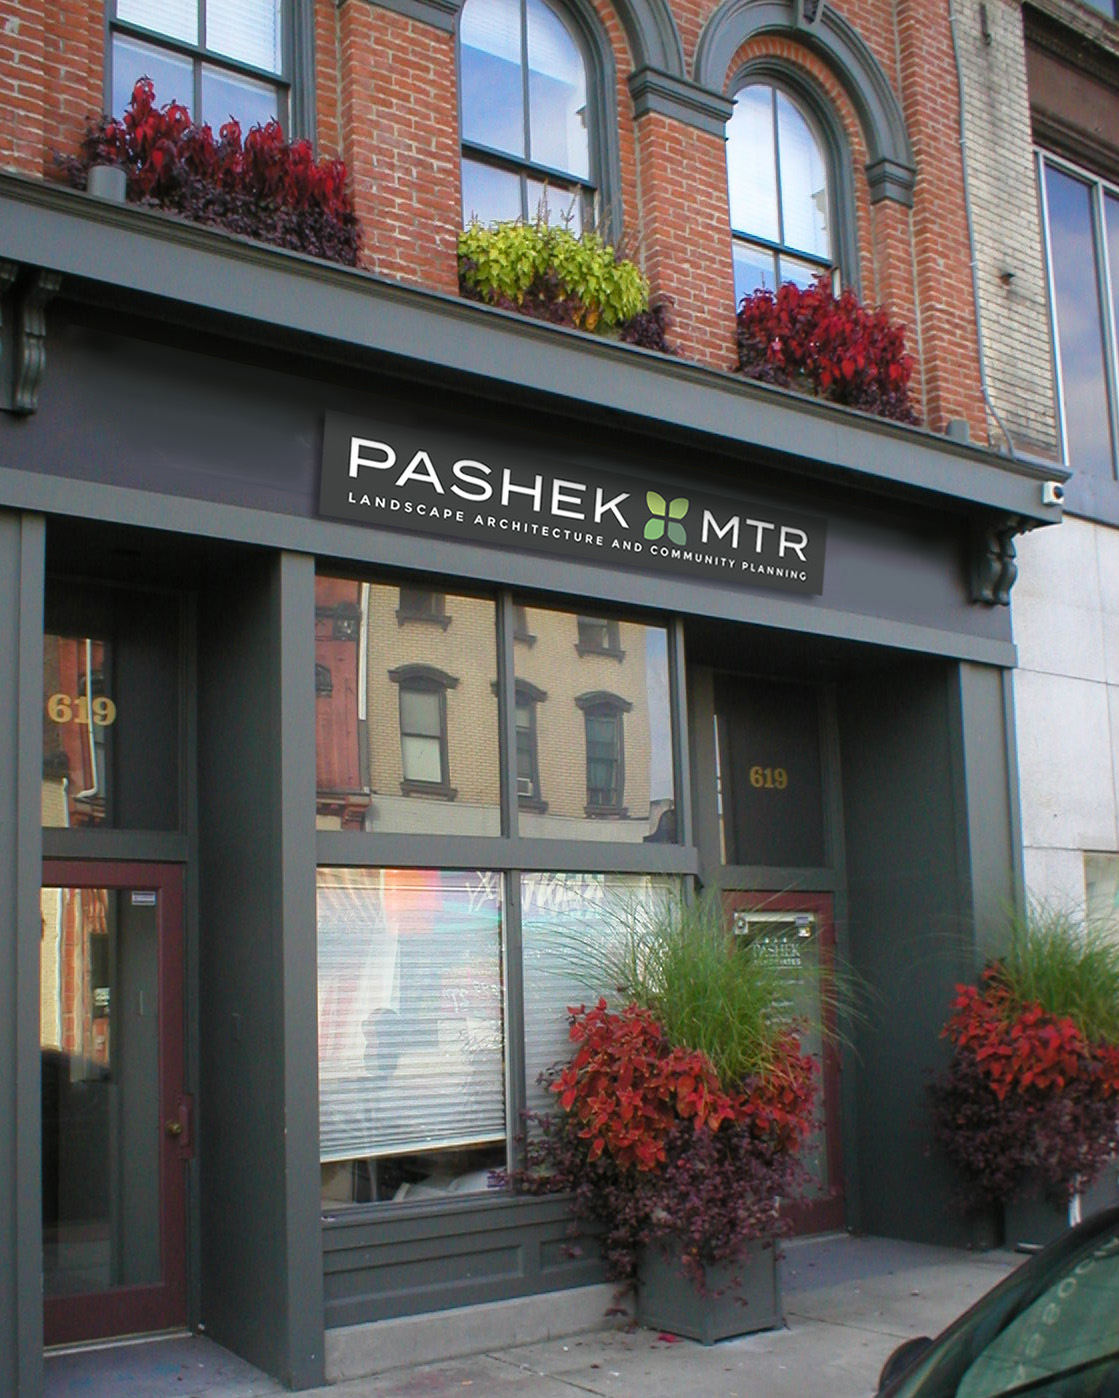 pashek associates and mtr landscape architects have merged